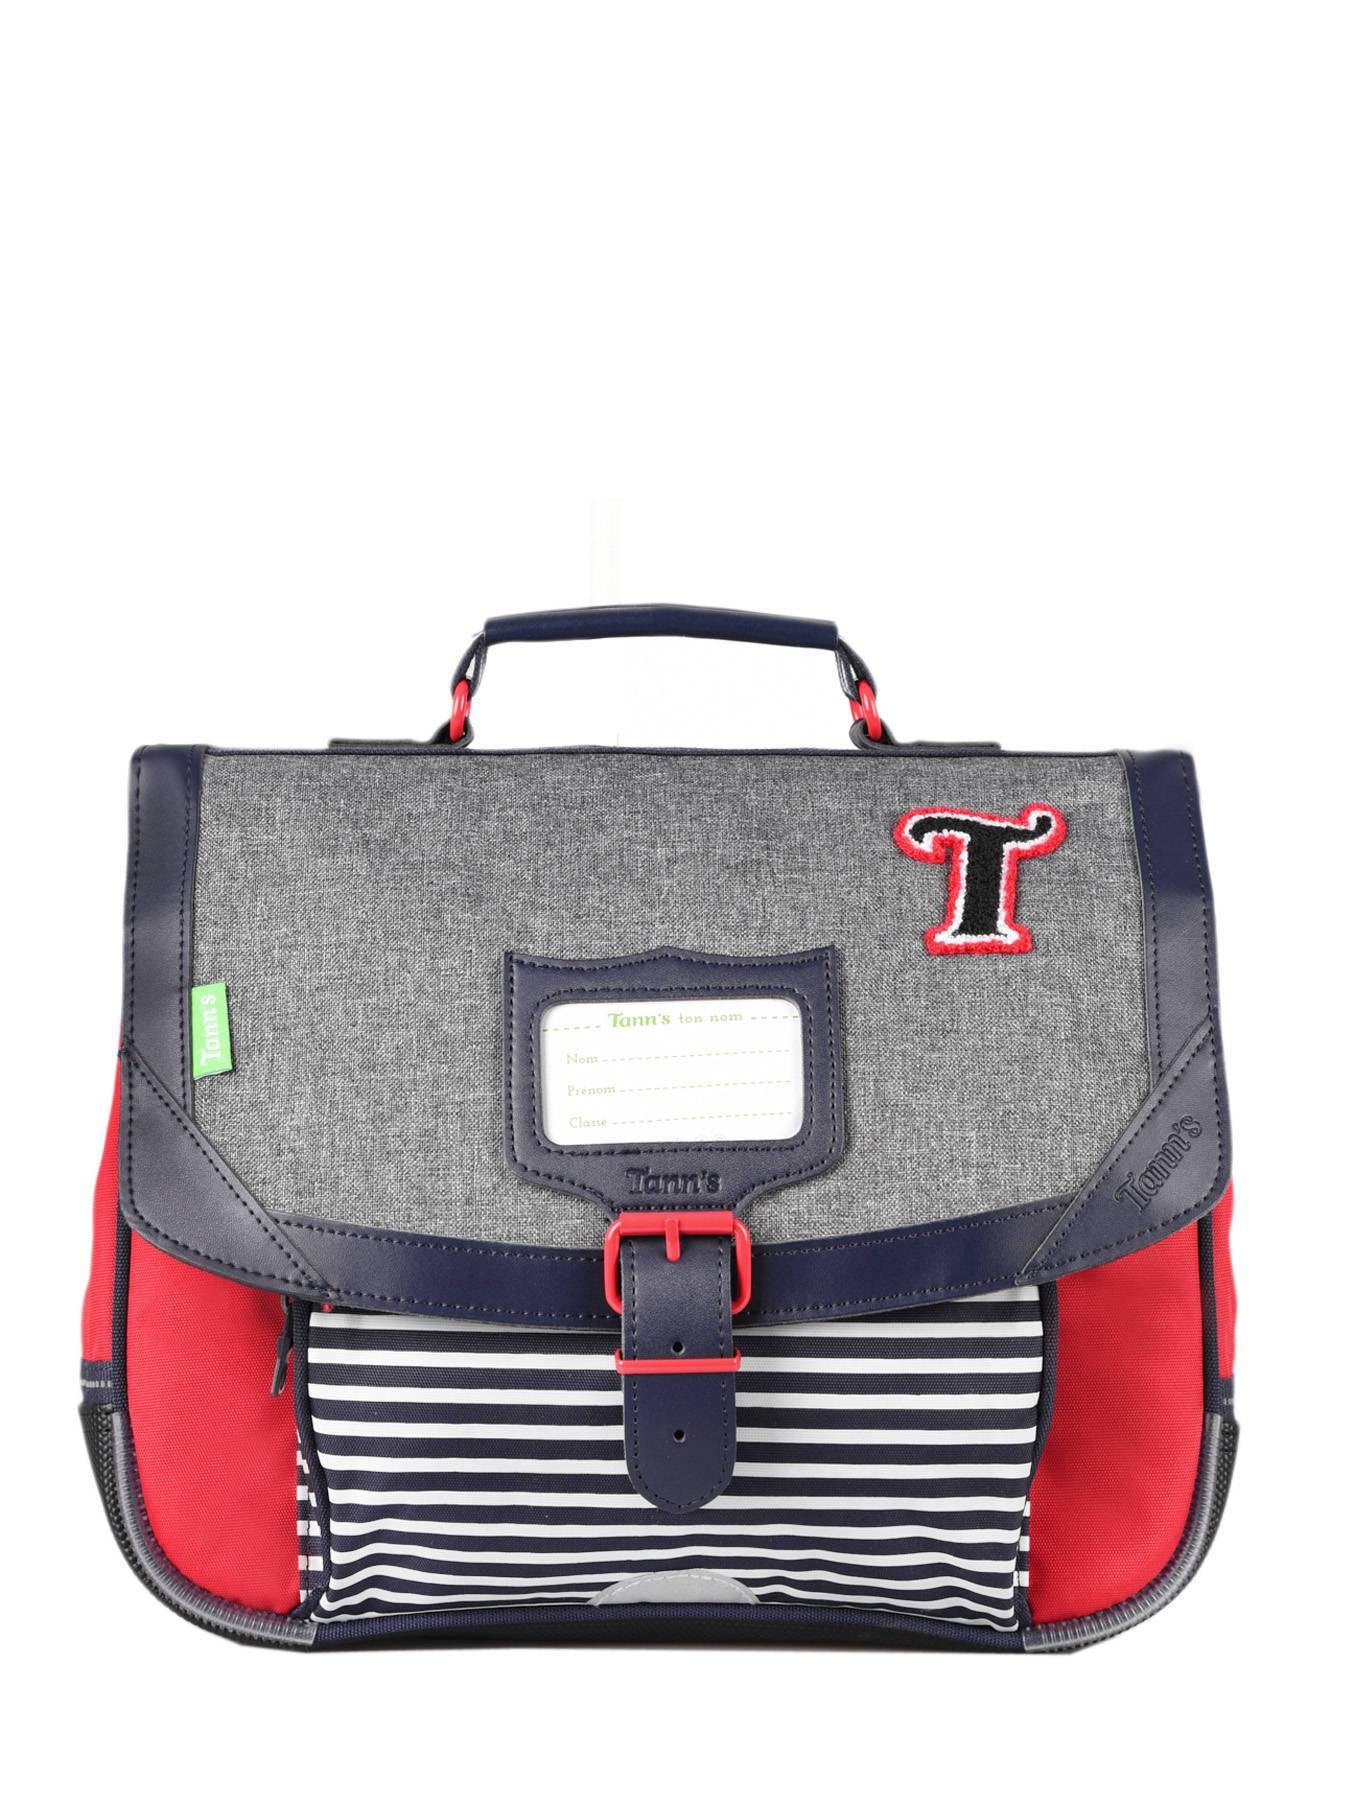 TANN'S Cartable 1 Compartiment Tann's Multicolore